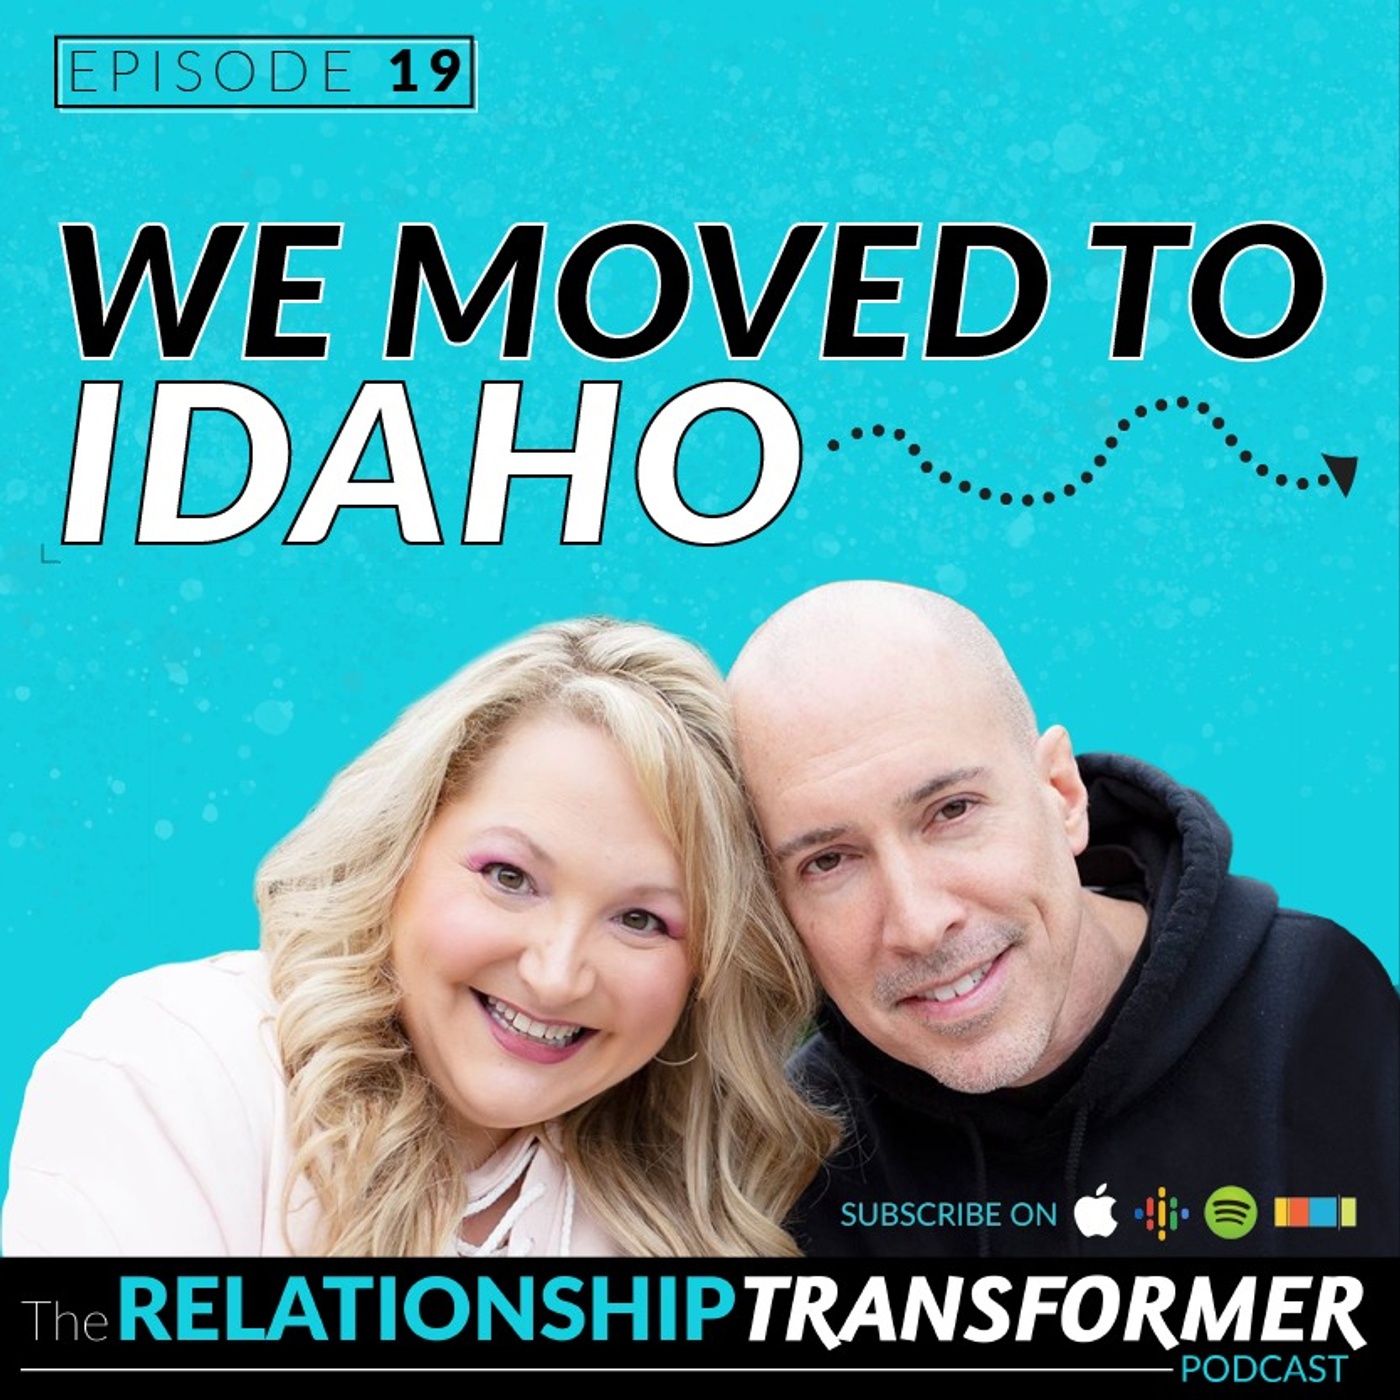 Relationship Transformers - 19: We Moved to Idaho